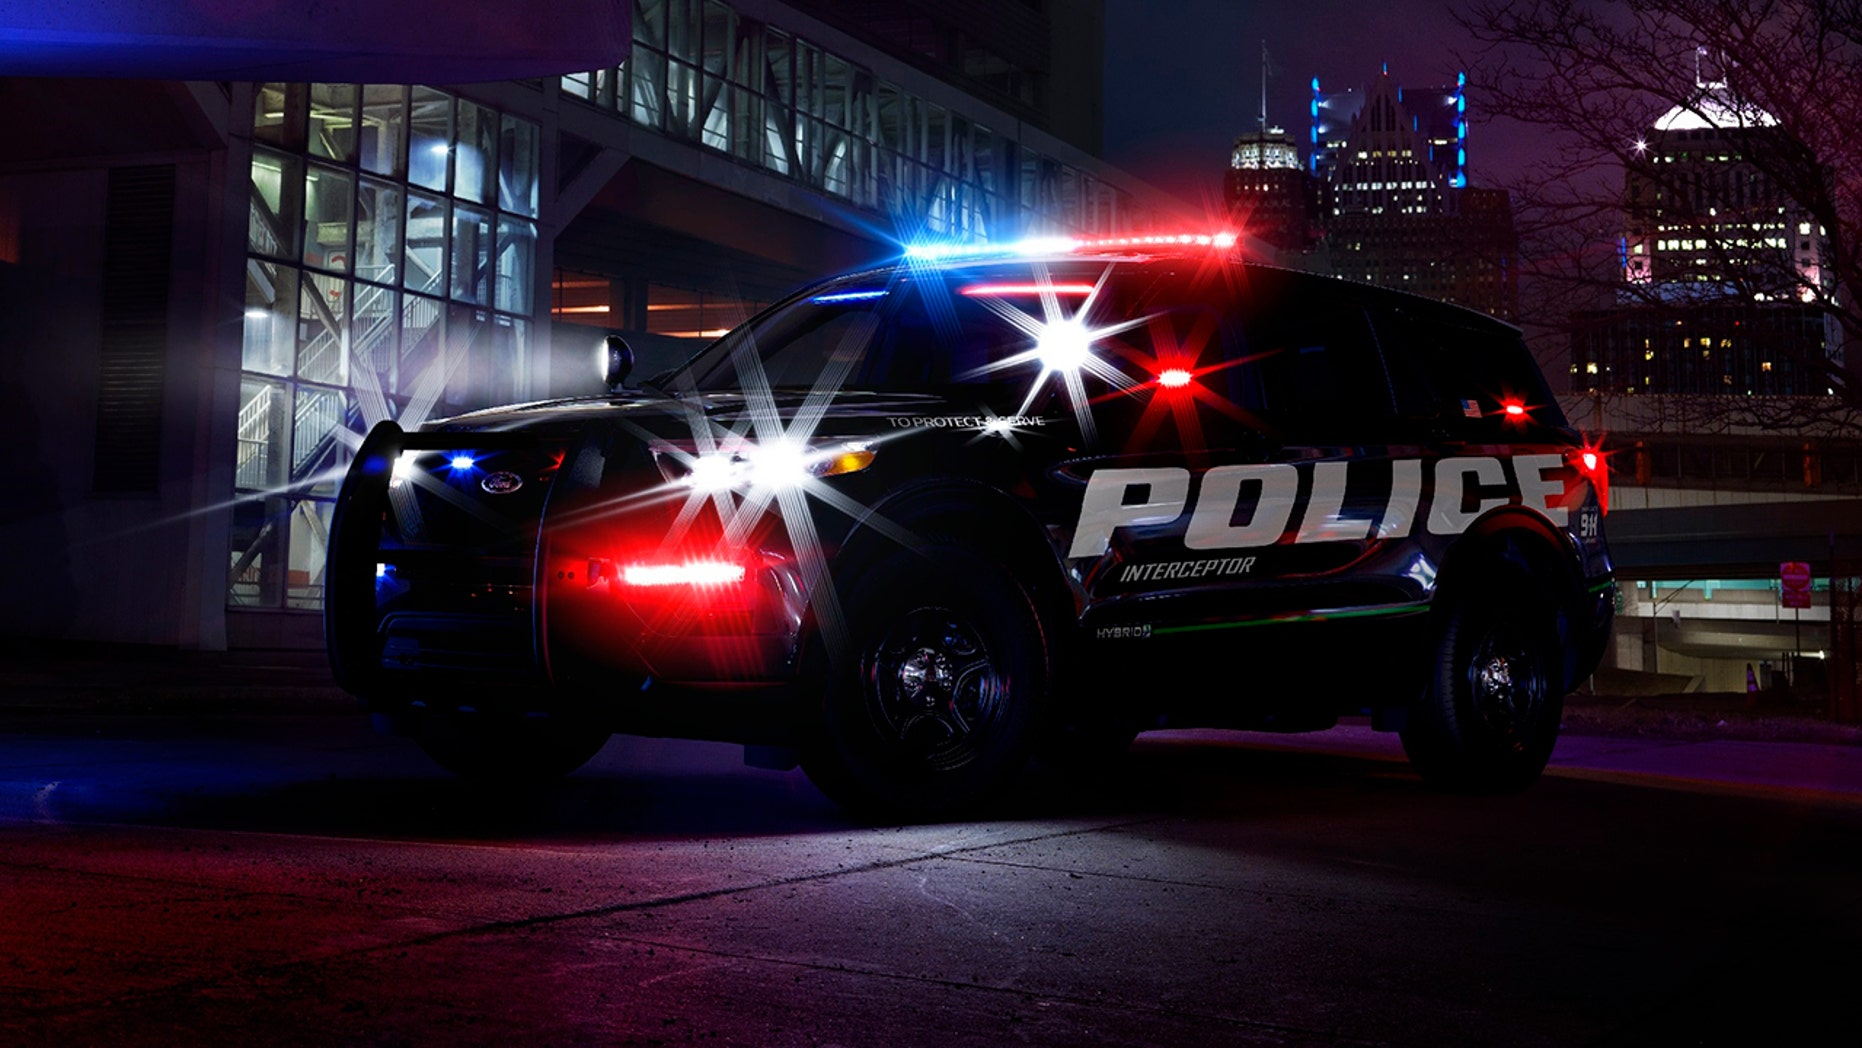 All-New Ford Police Interceptor Utility is purpose-built for law enforcement with a standard hybrid powertrain that doesn't compromise interior space, improves pursuit performance and aims to lower fuel costs, and it comes with standard all-wheel drive